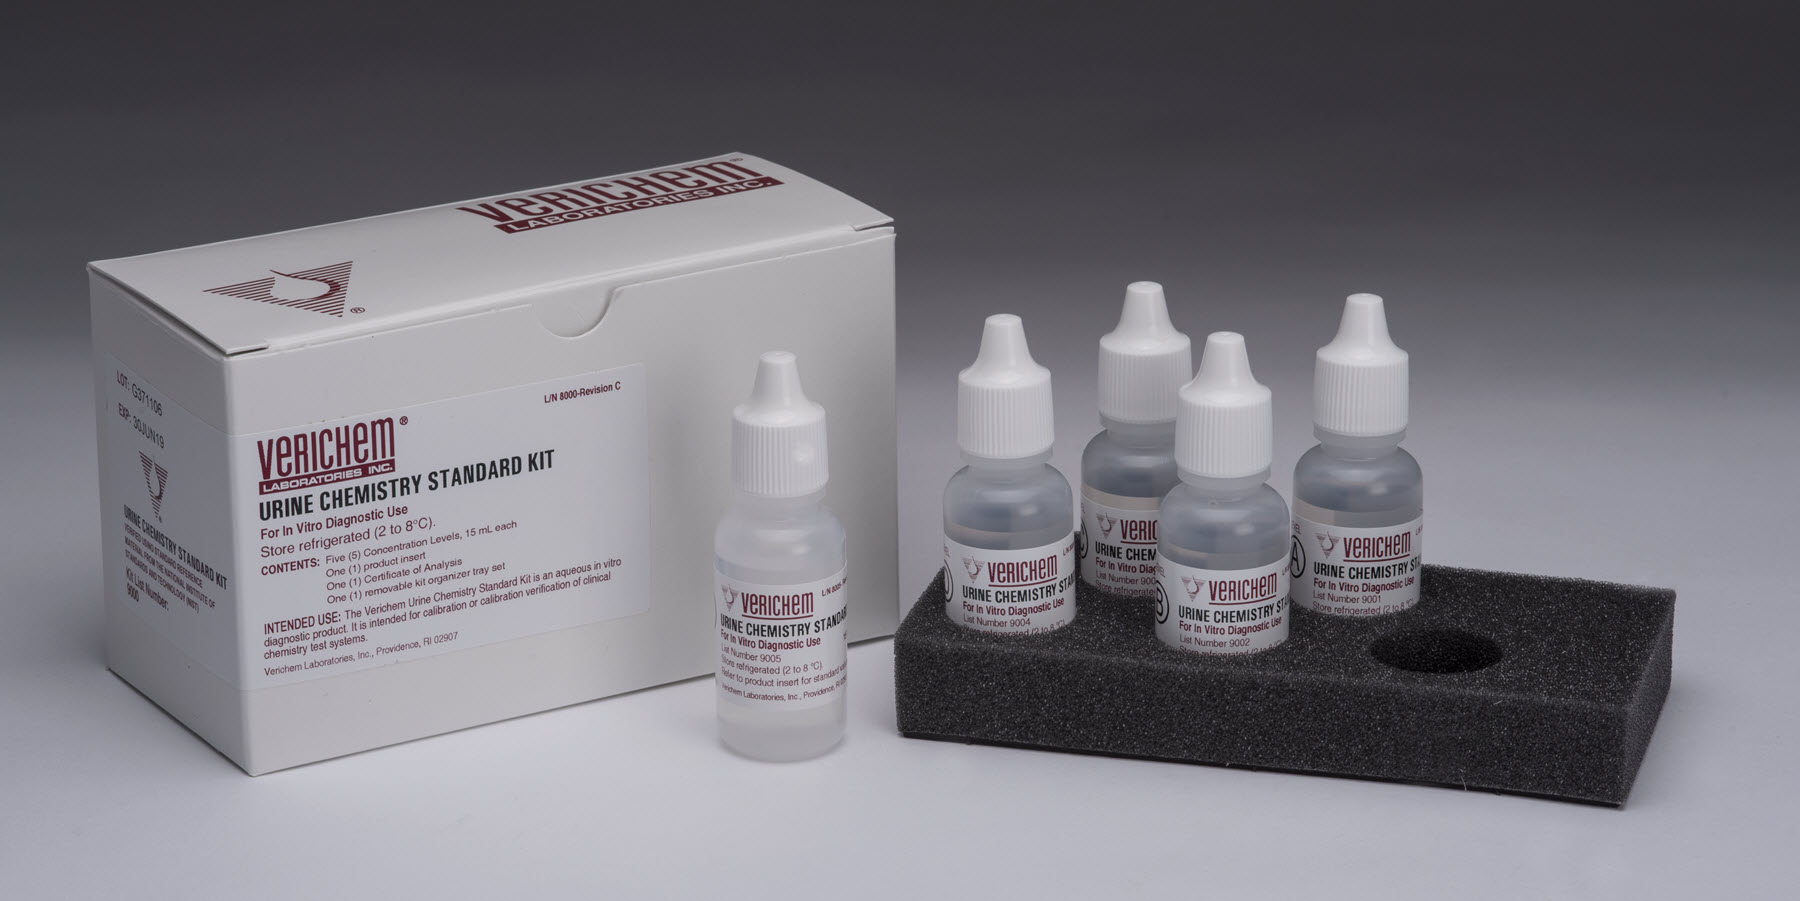 Verichem Laboratories Offers Multi-Analyte, Bio-Synthetic, NIST Traceable, Urine Chemistries Standards Kit